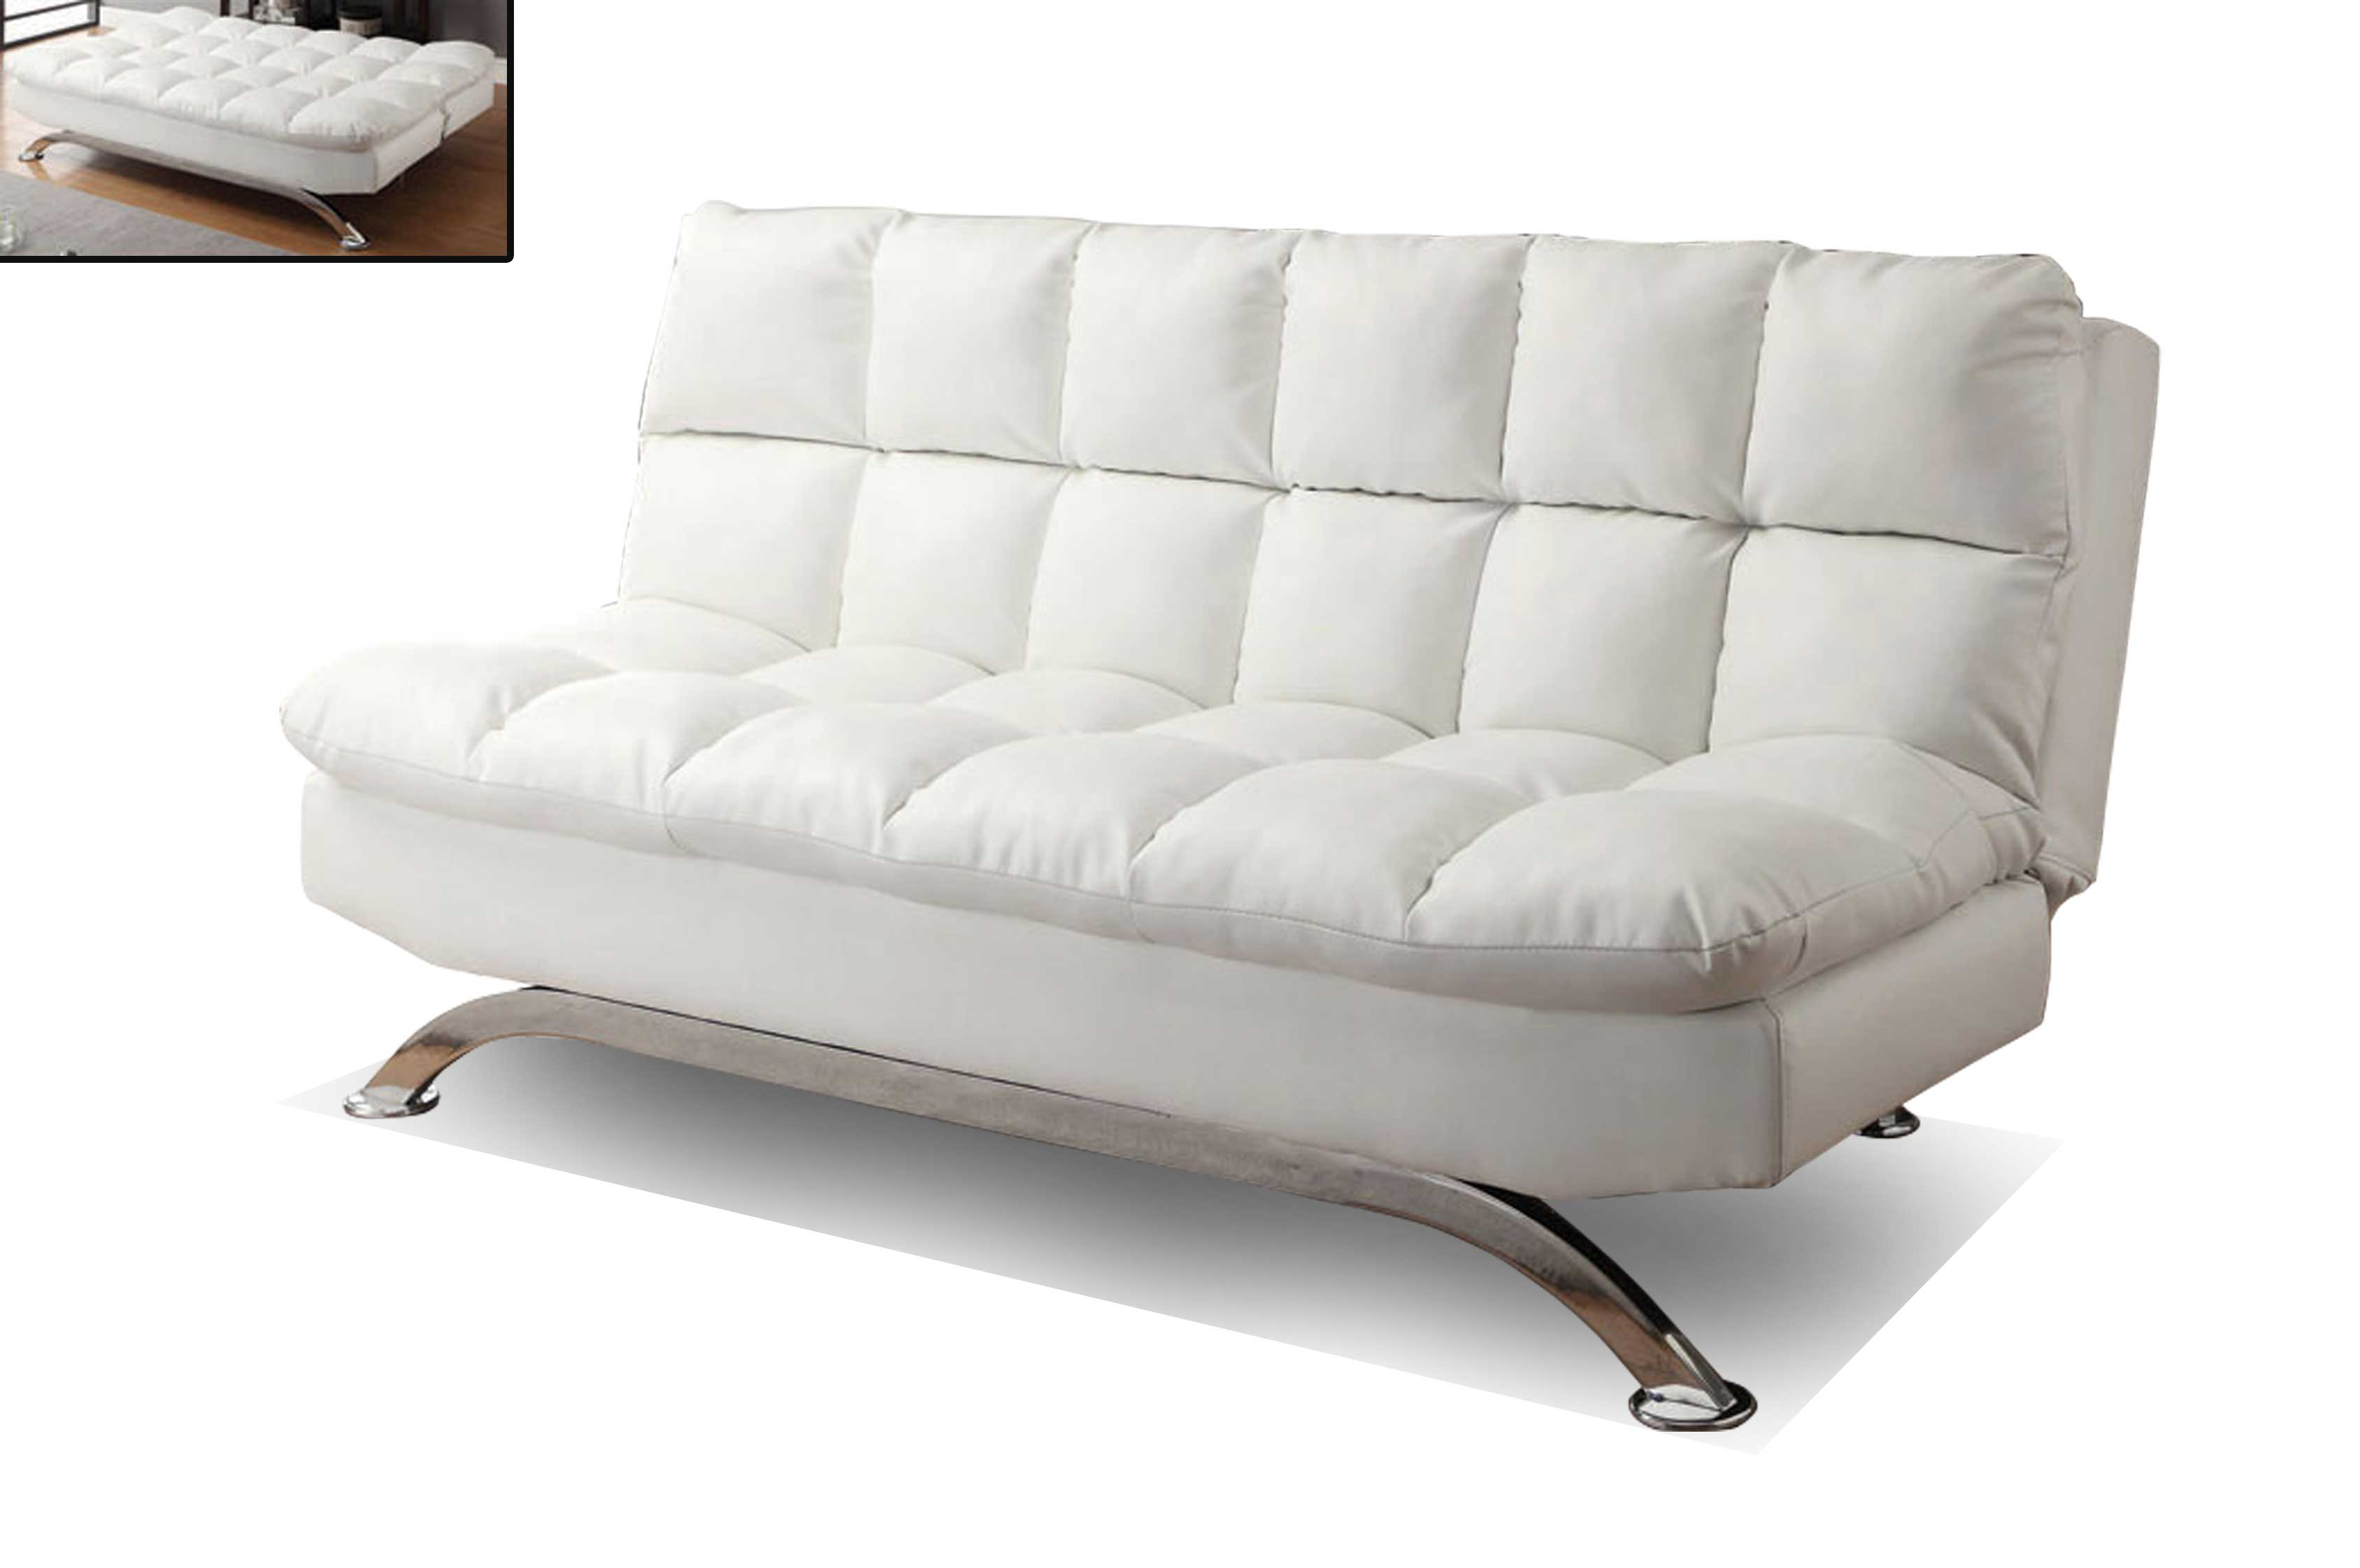 Klik klak sofa bed white ameublement beaubien magasin for Sofa lit cuir